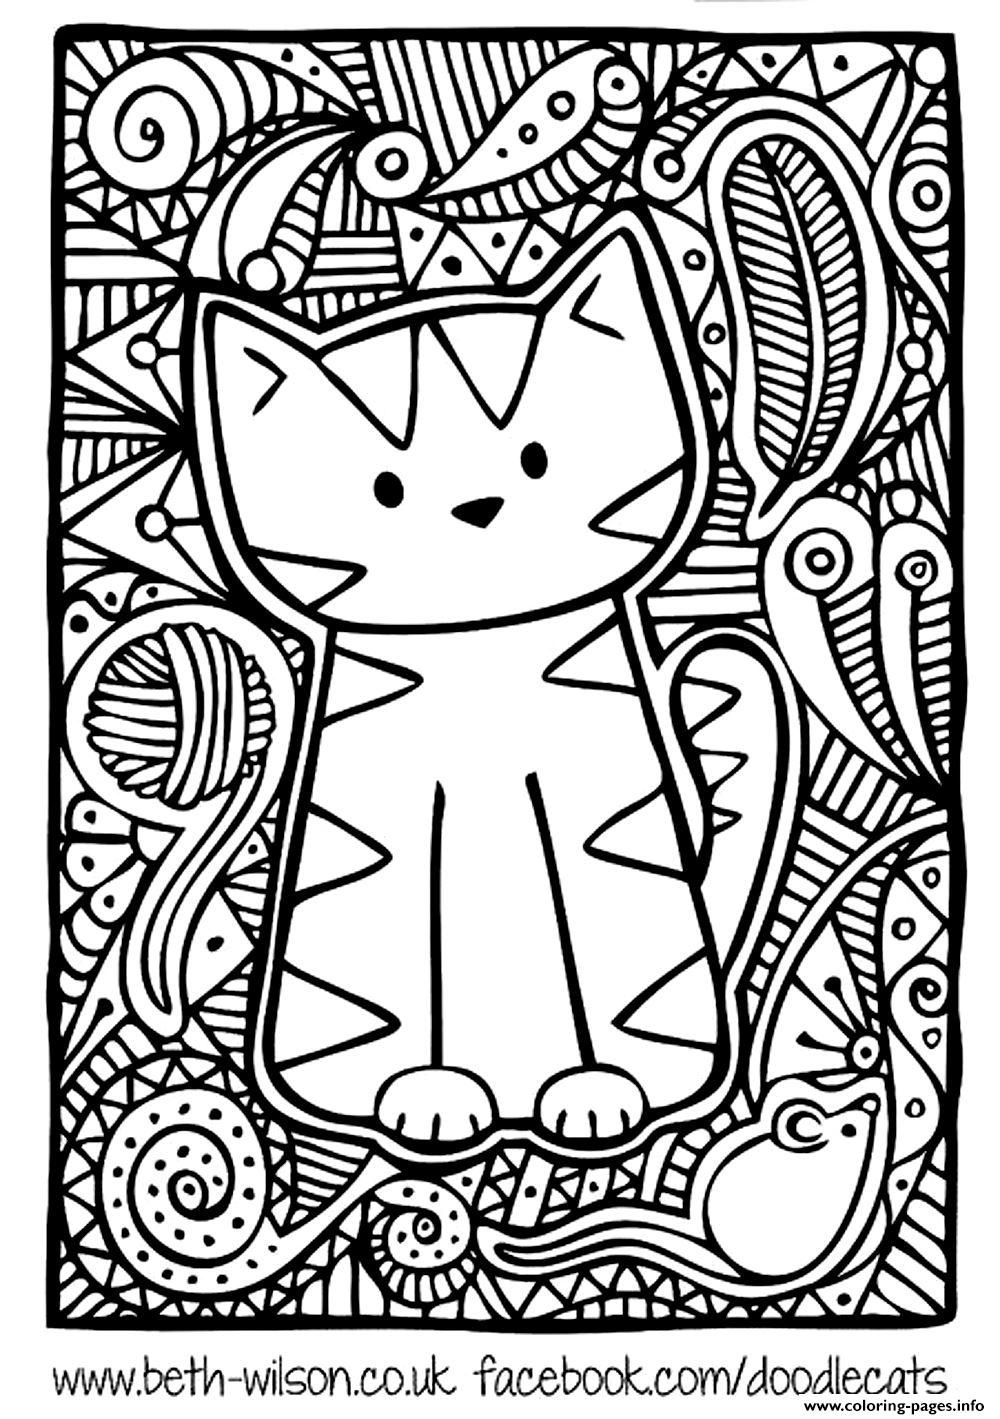 Print Kitten Adult Difficult Cute Cat Coloring Pages With Images